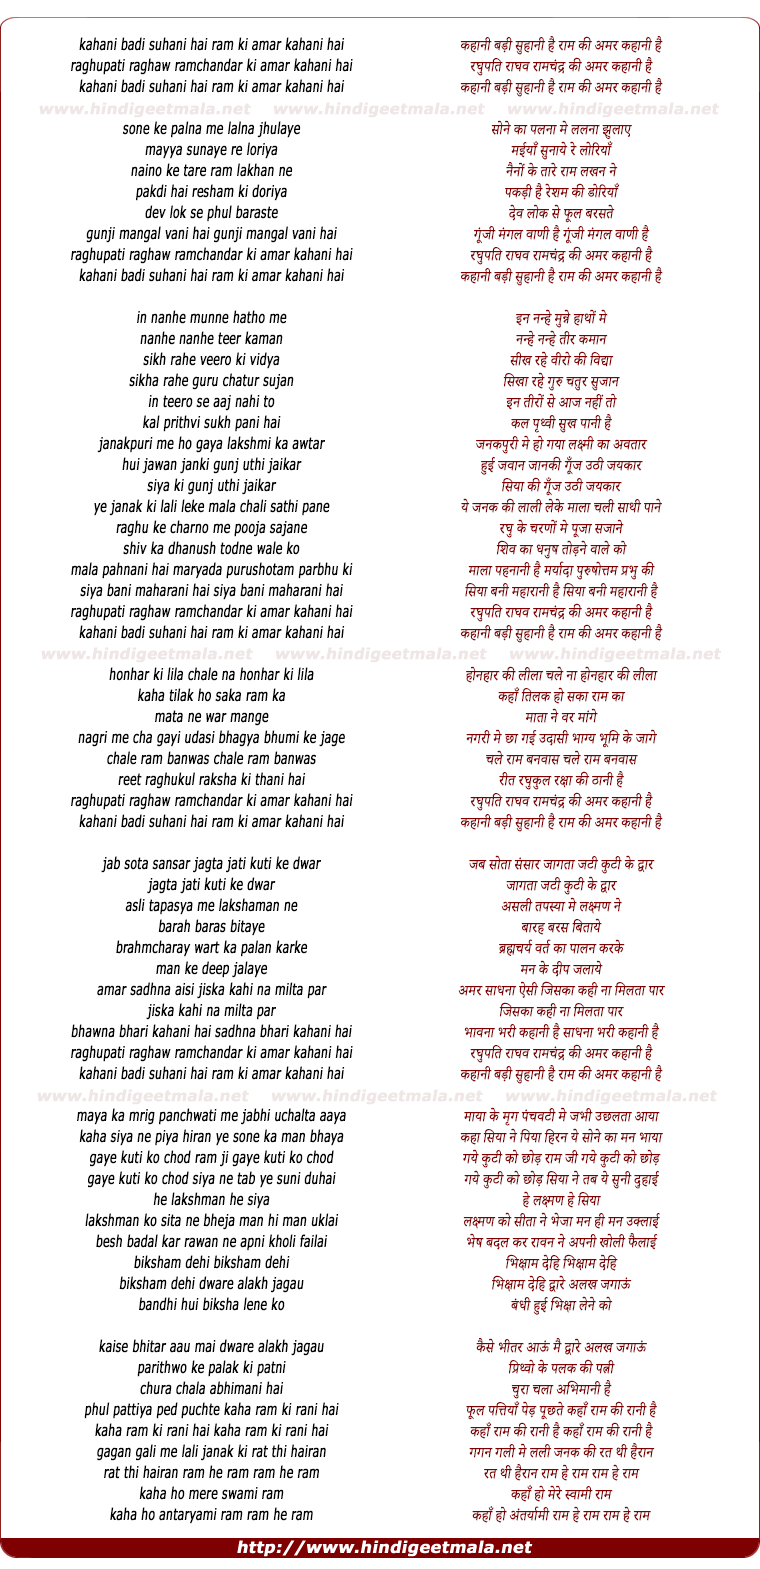 lyrics of song Kahani Badi Suhani Hai Ram Ki Amar Kahani Hai